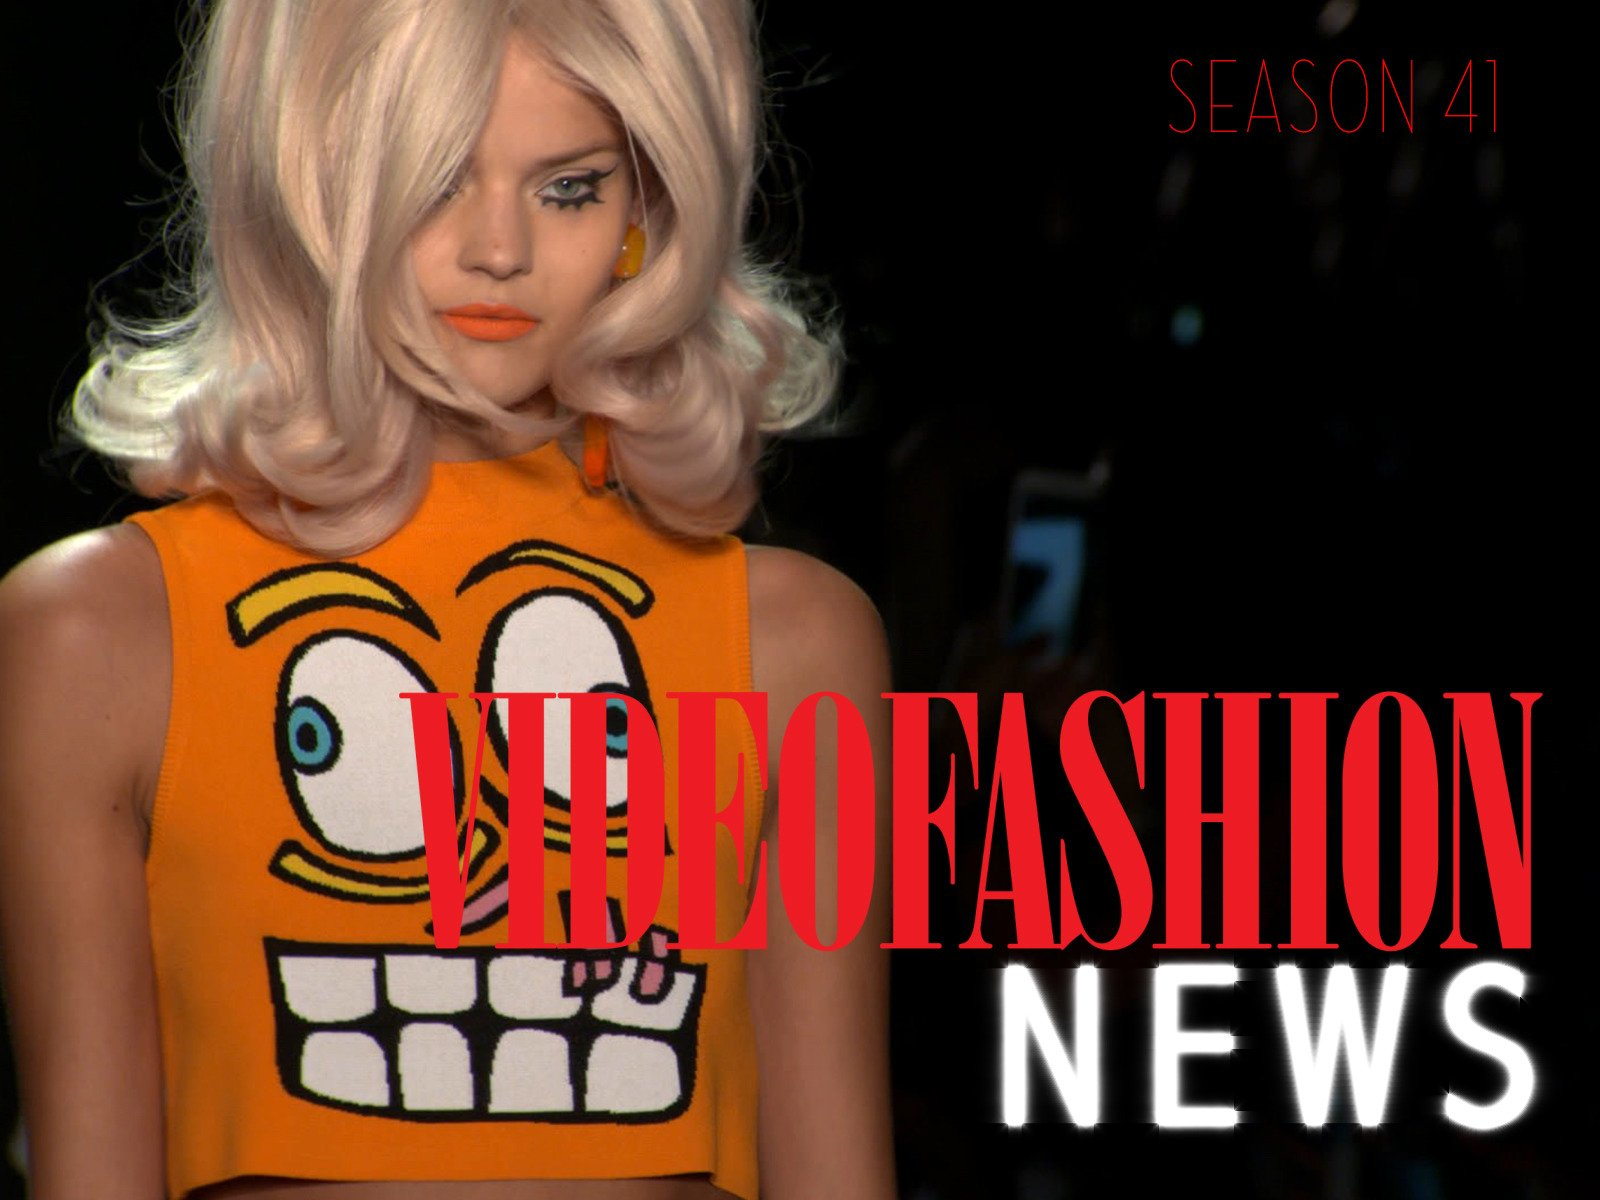 Videofashion News - Season 2